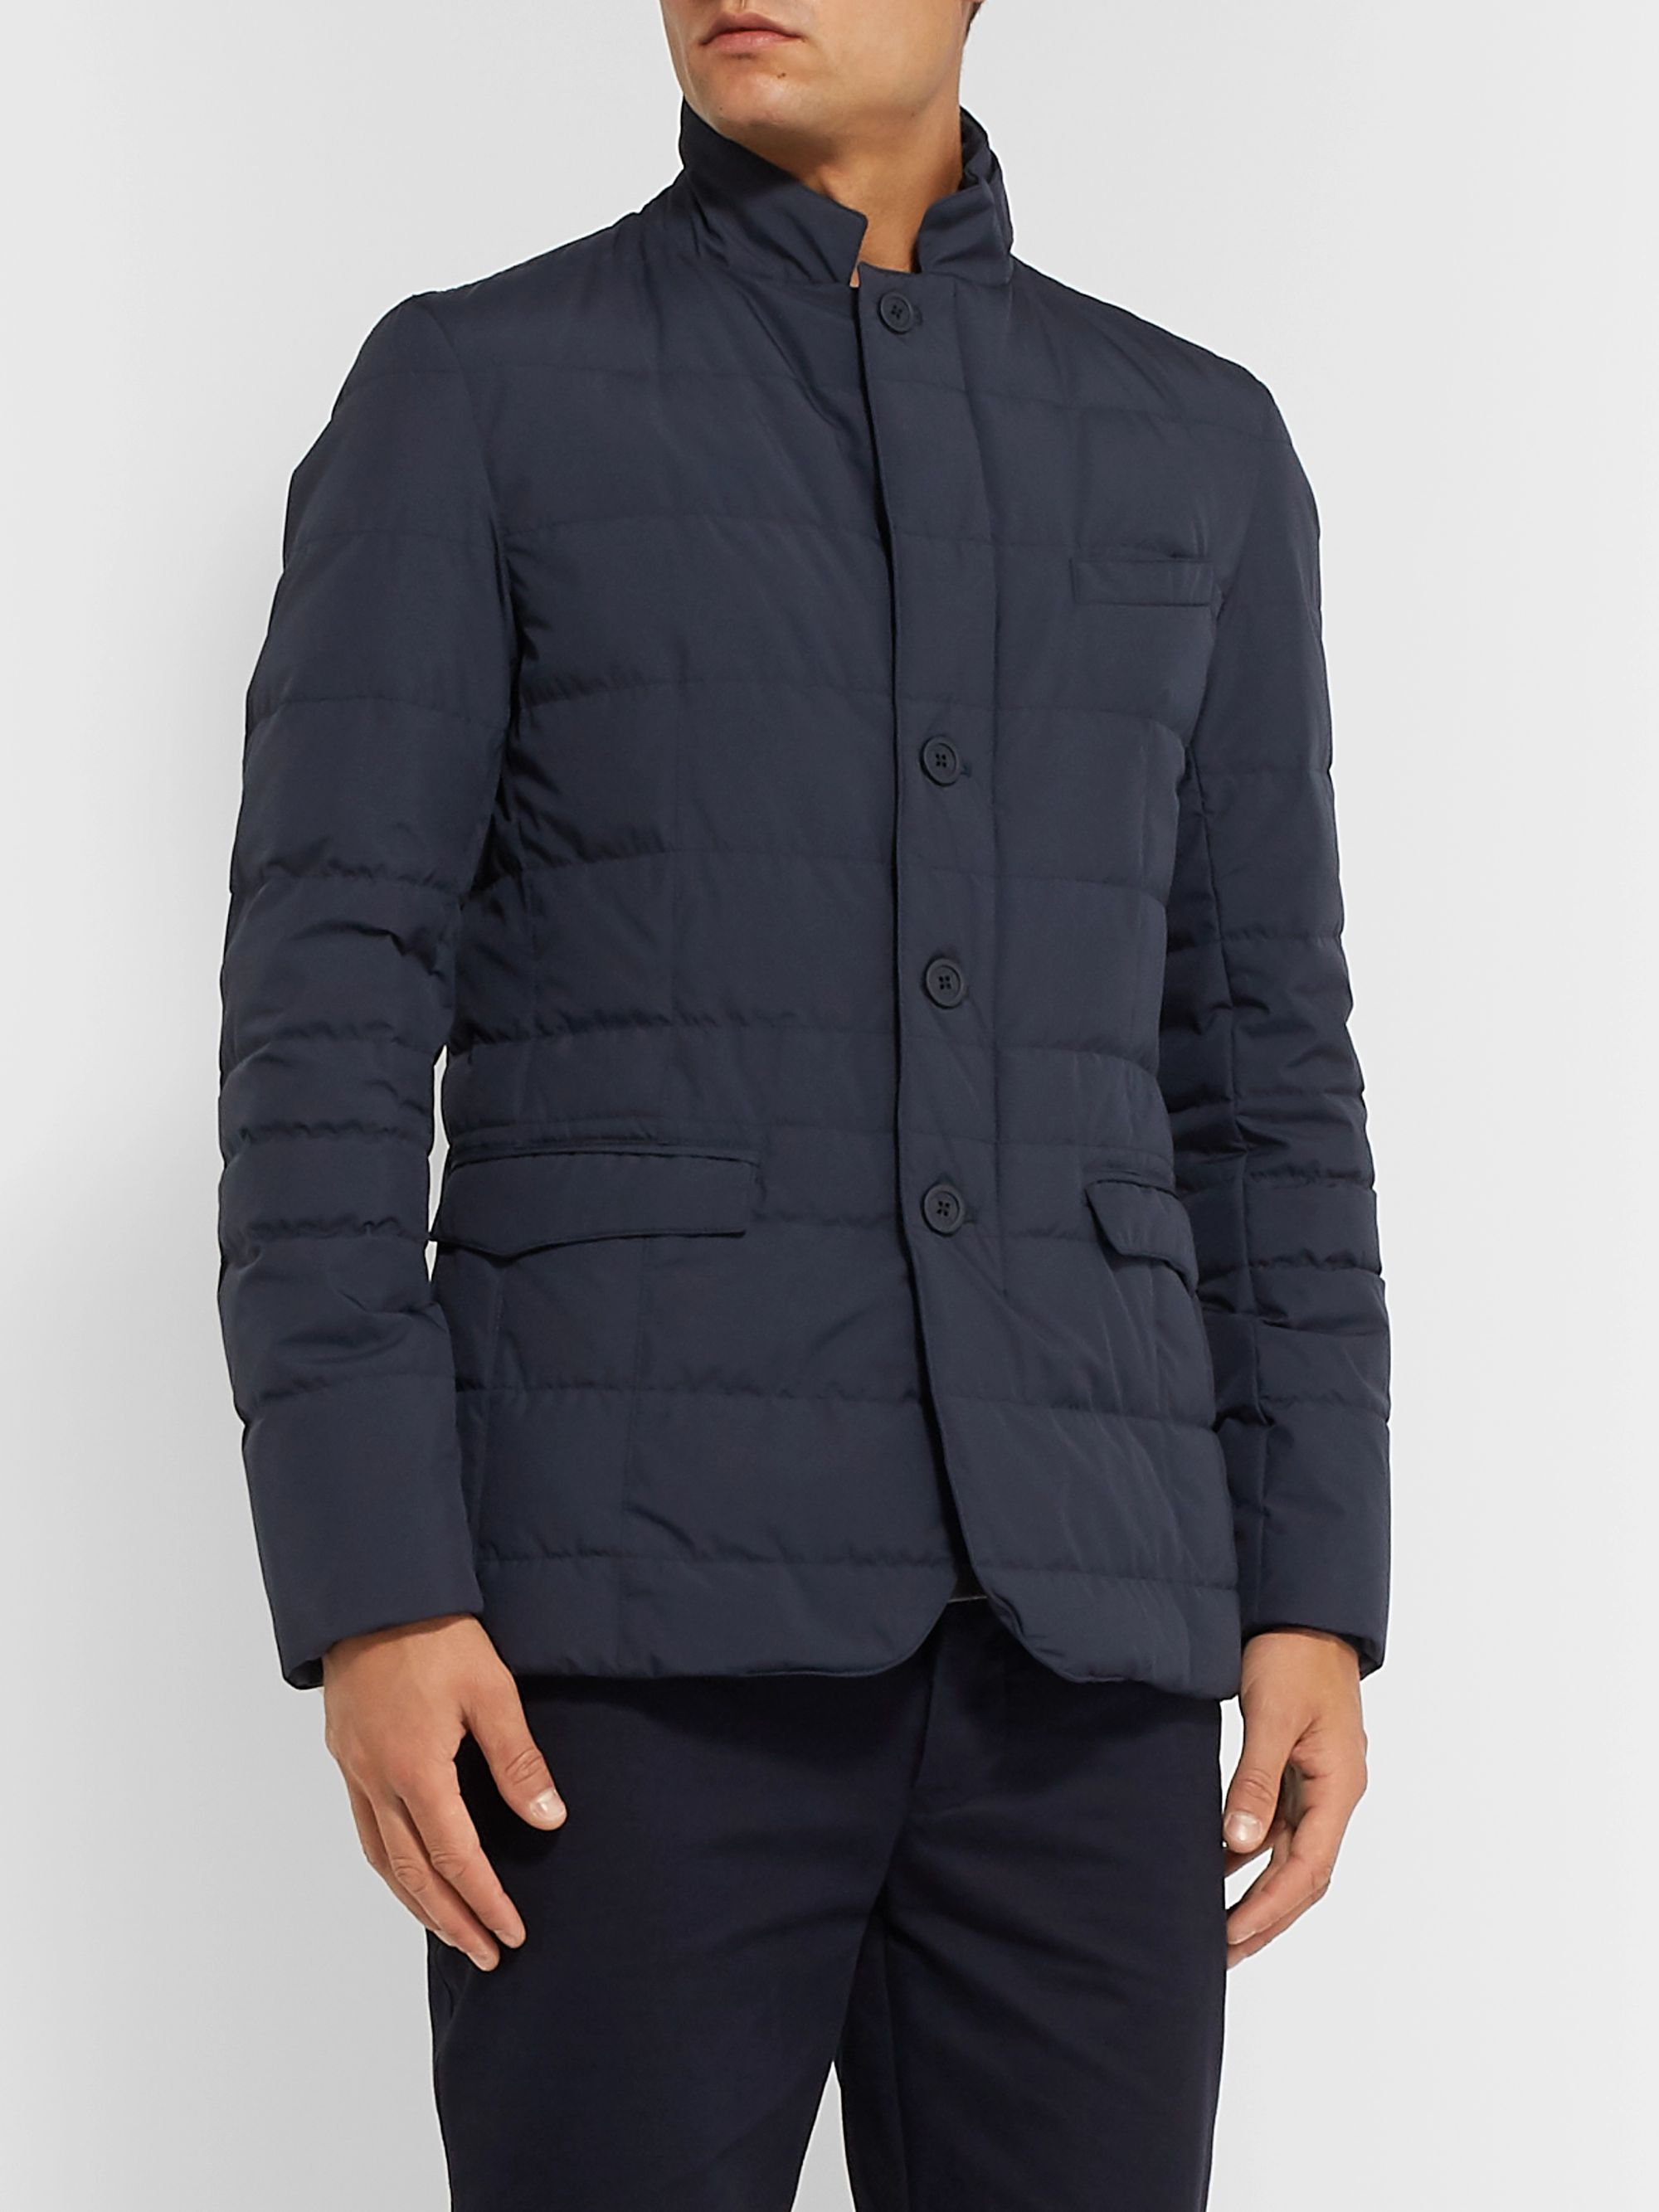 Herno Laminar Quilted GORE-TEX INFINIUM Down Jacket